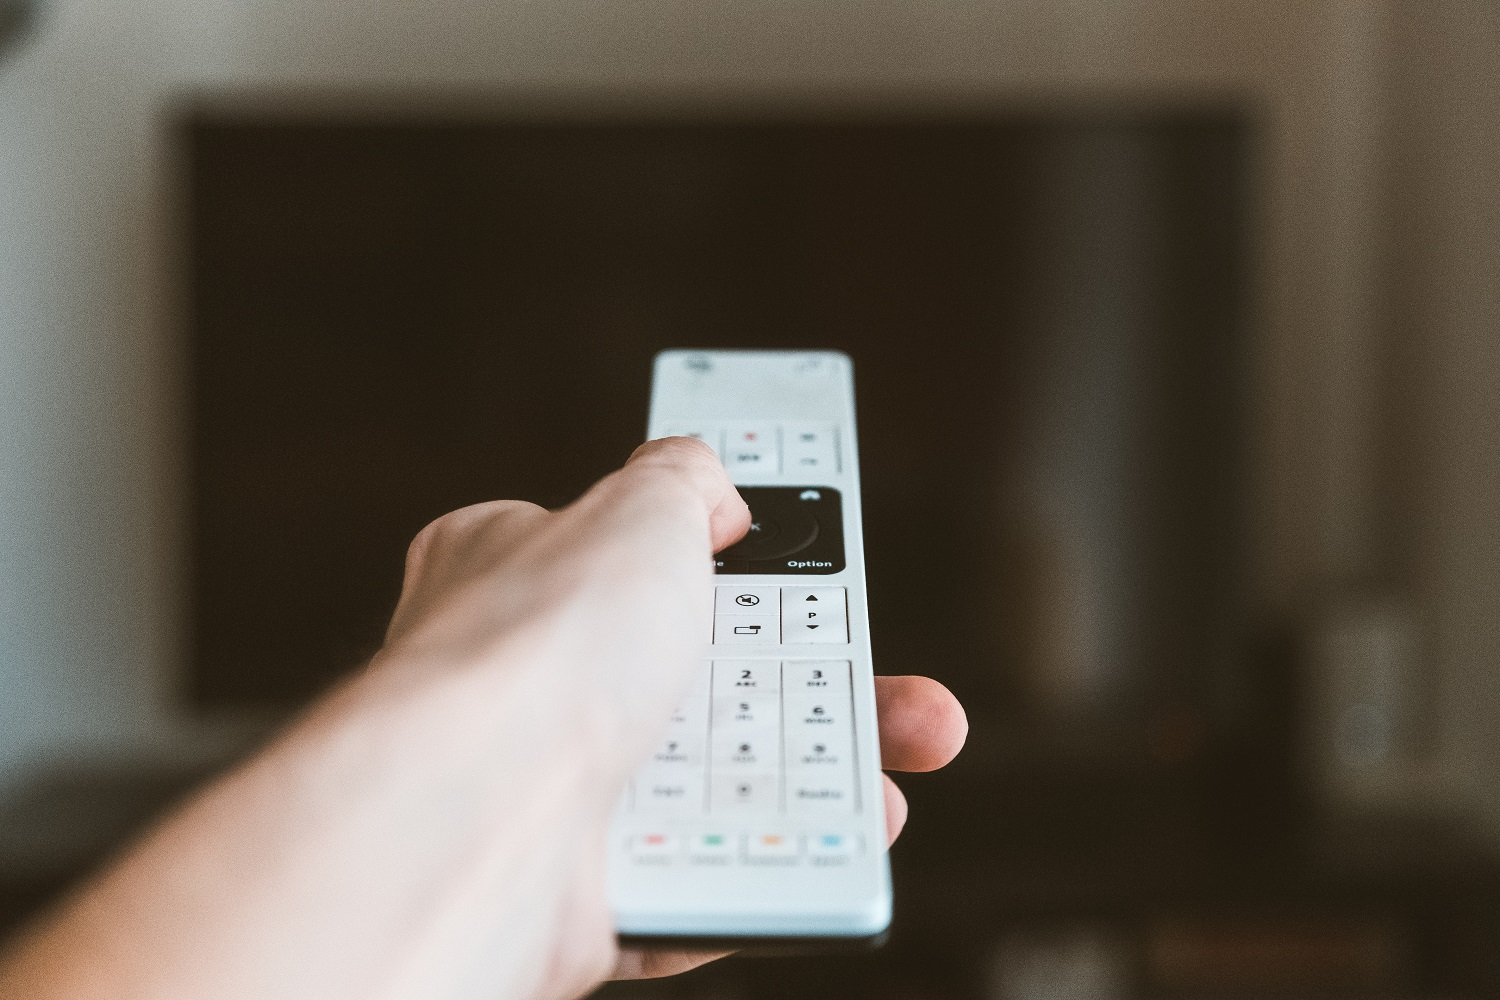 TV Remote Control: How to Use a Smartphone to Control a Samsung TV